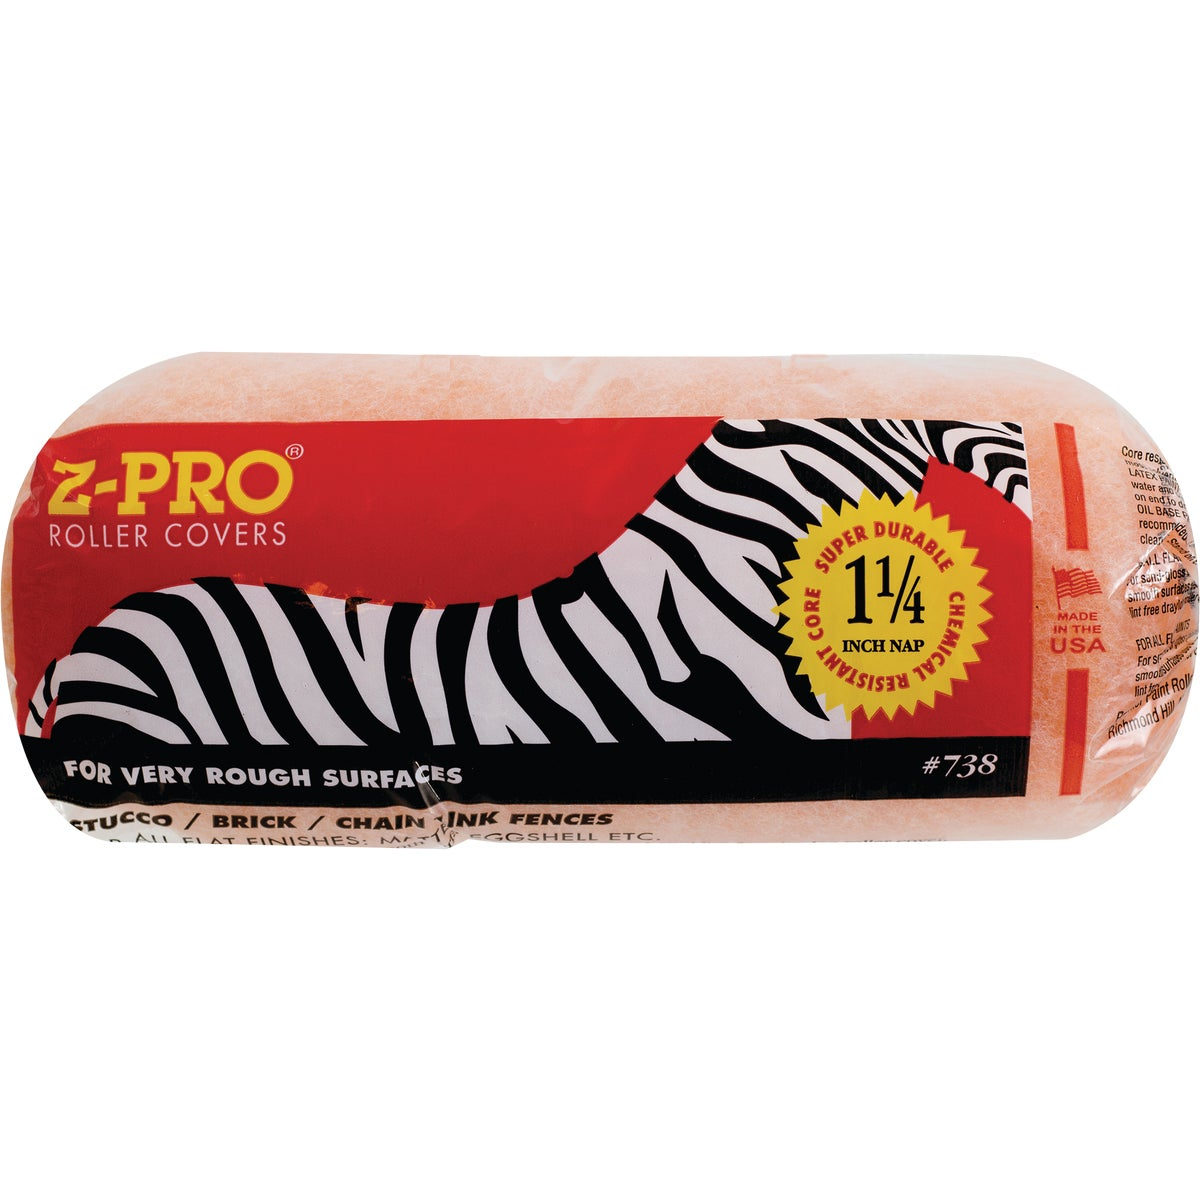 9X1-1/4 NAP ROLLER COVER - 738 by Premier Paint Roller